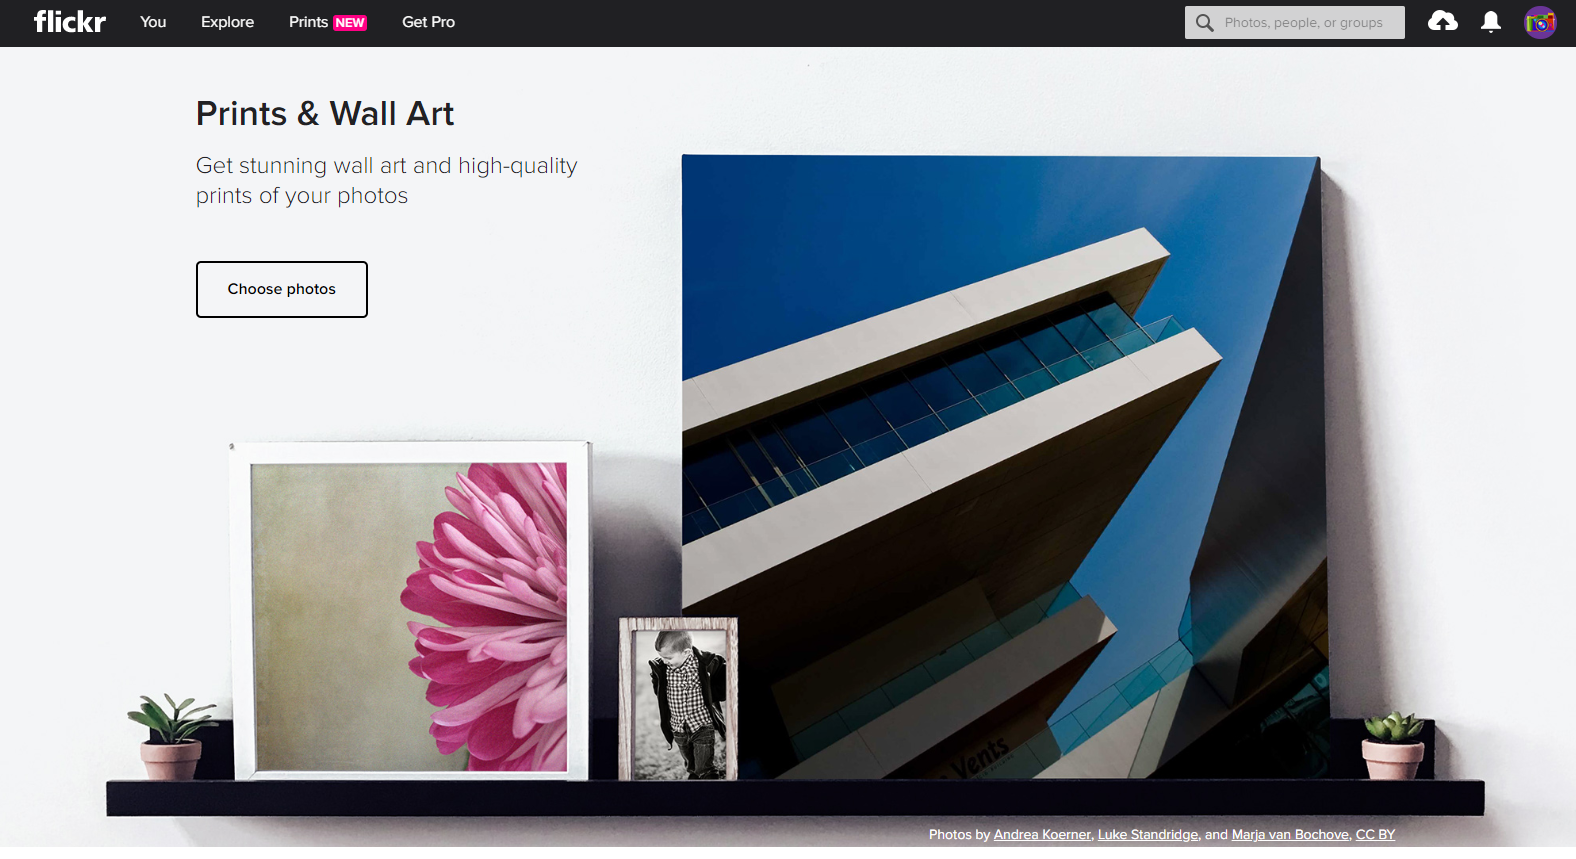 You Can Now Order Prints of Your Images Directly Through Flickr Prints